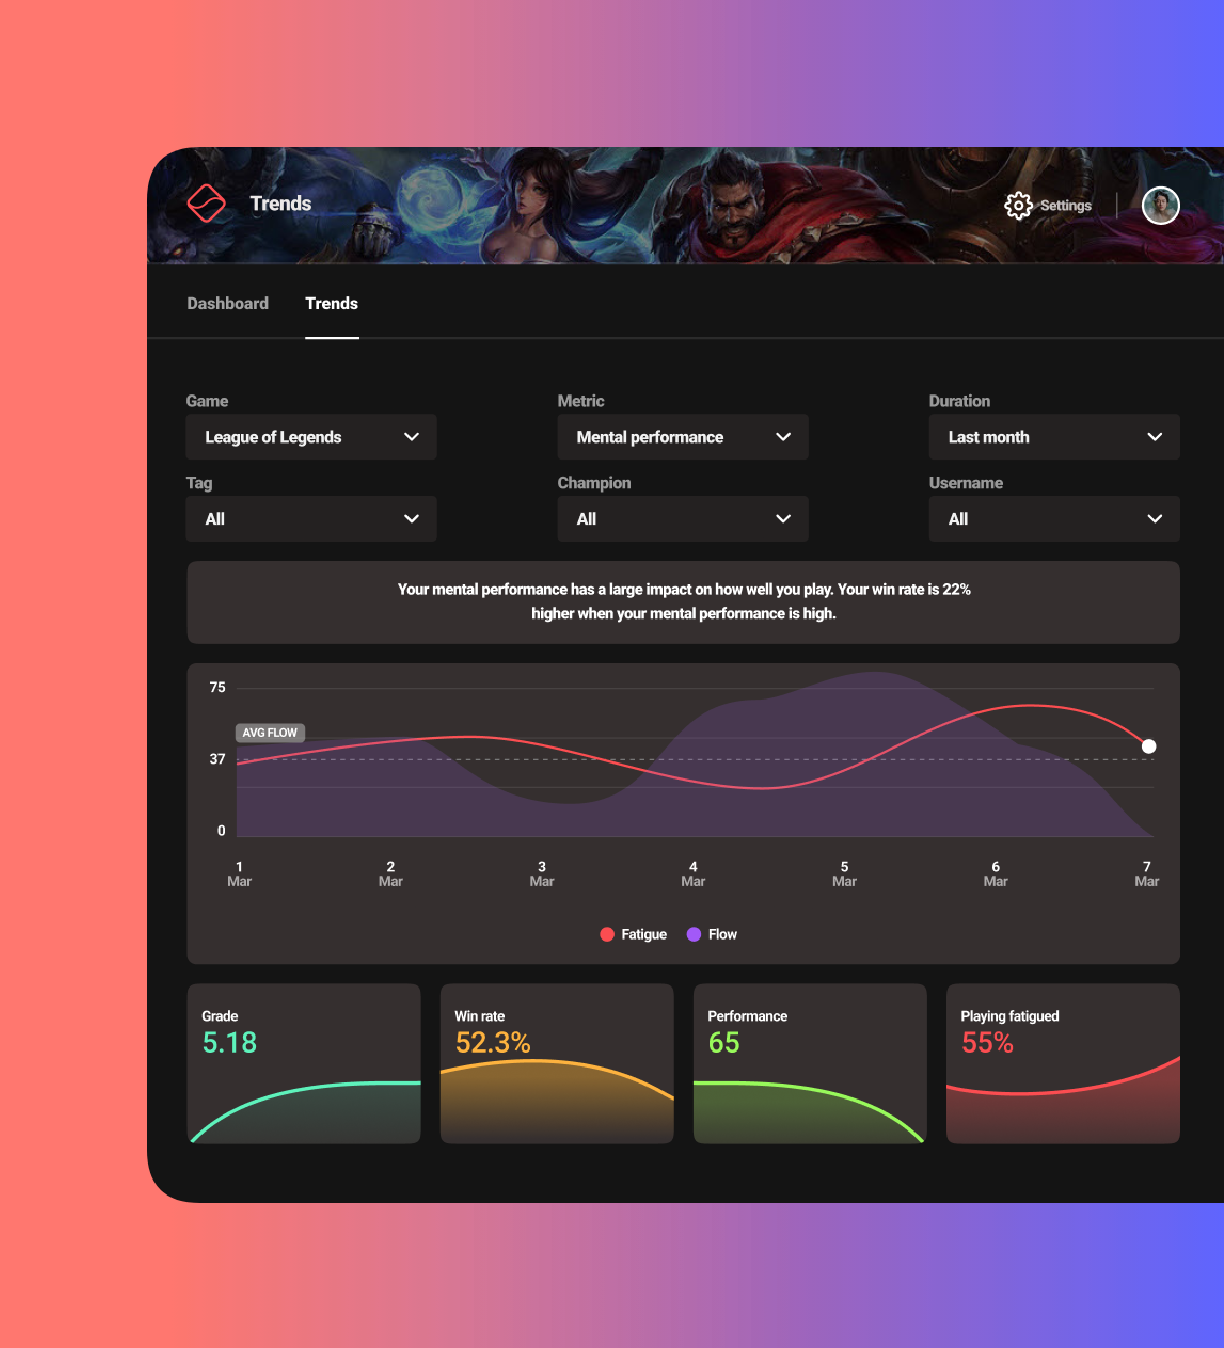 The MaddCog Trends screen offers the ability to track performance over time and gives insights and feedback